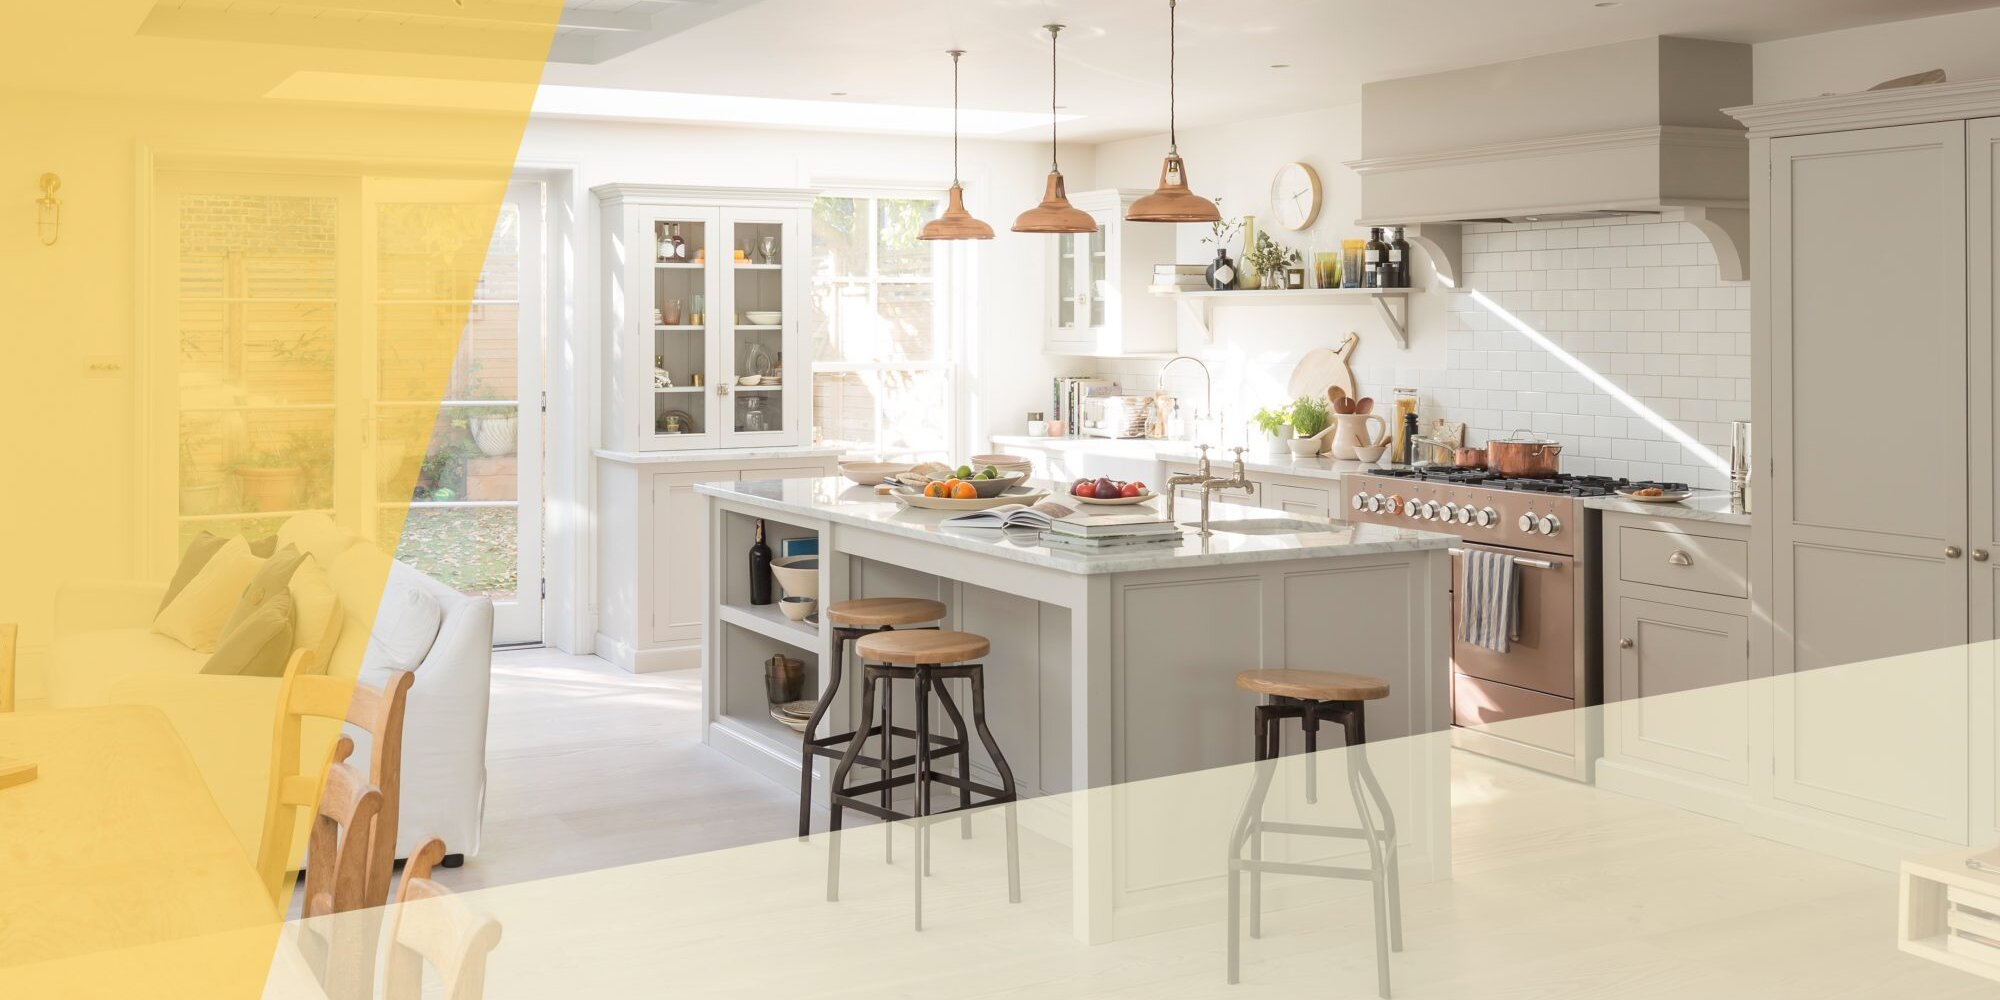 9 Timeless Kitchen Trends That Will Never Go Out of Style   Real ...